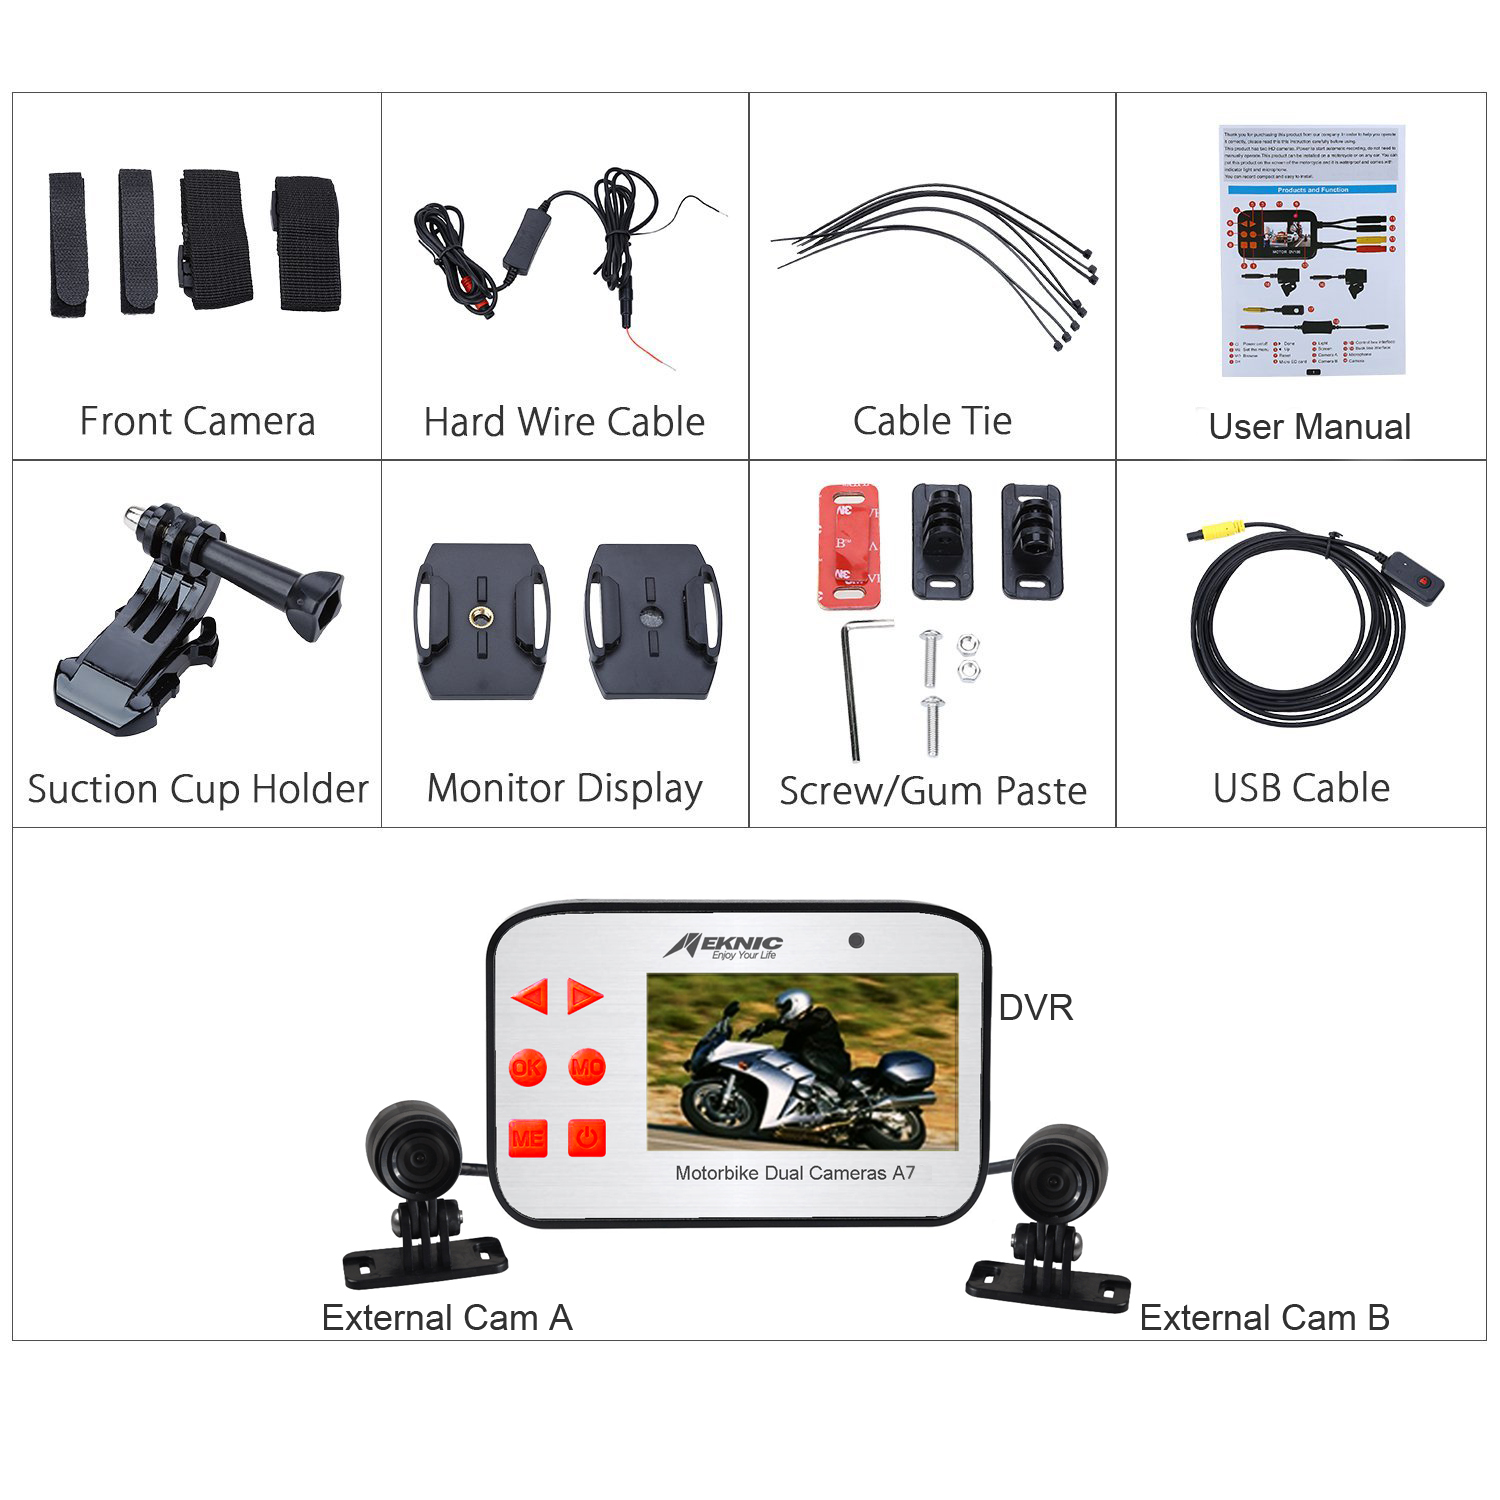 Meknic A7 Motorcycle Camera, Dual Lens 1080P Video Security Motorbike Camera System with 2.7″ Screen, Motorcycle Dash Camera, Waterproof Motorcycle Driving Recorder with G-Sensor, Loop Recording, WDR